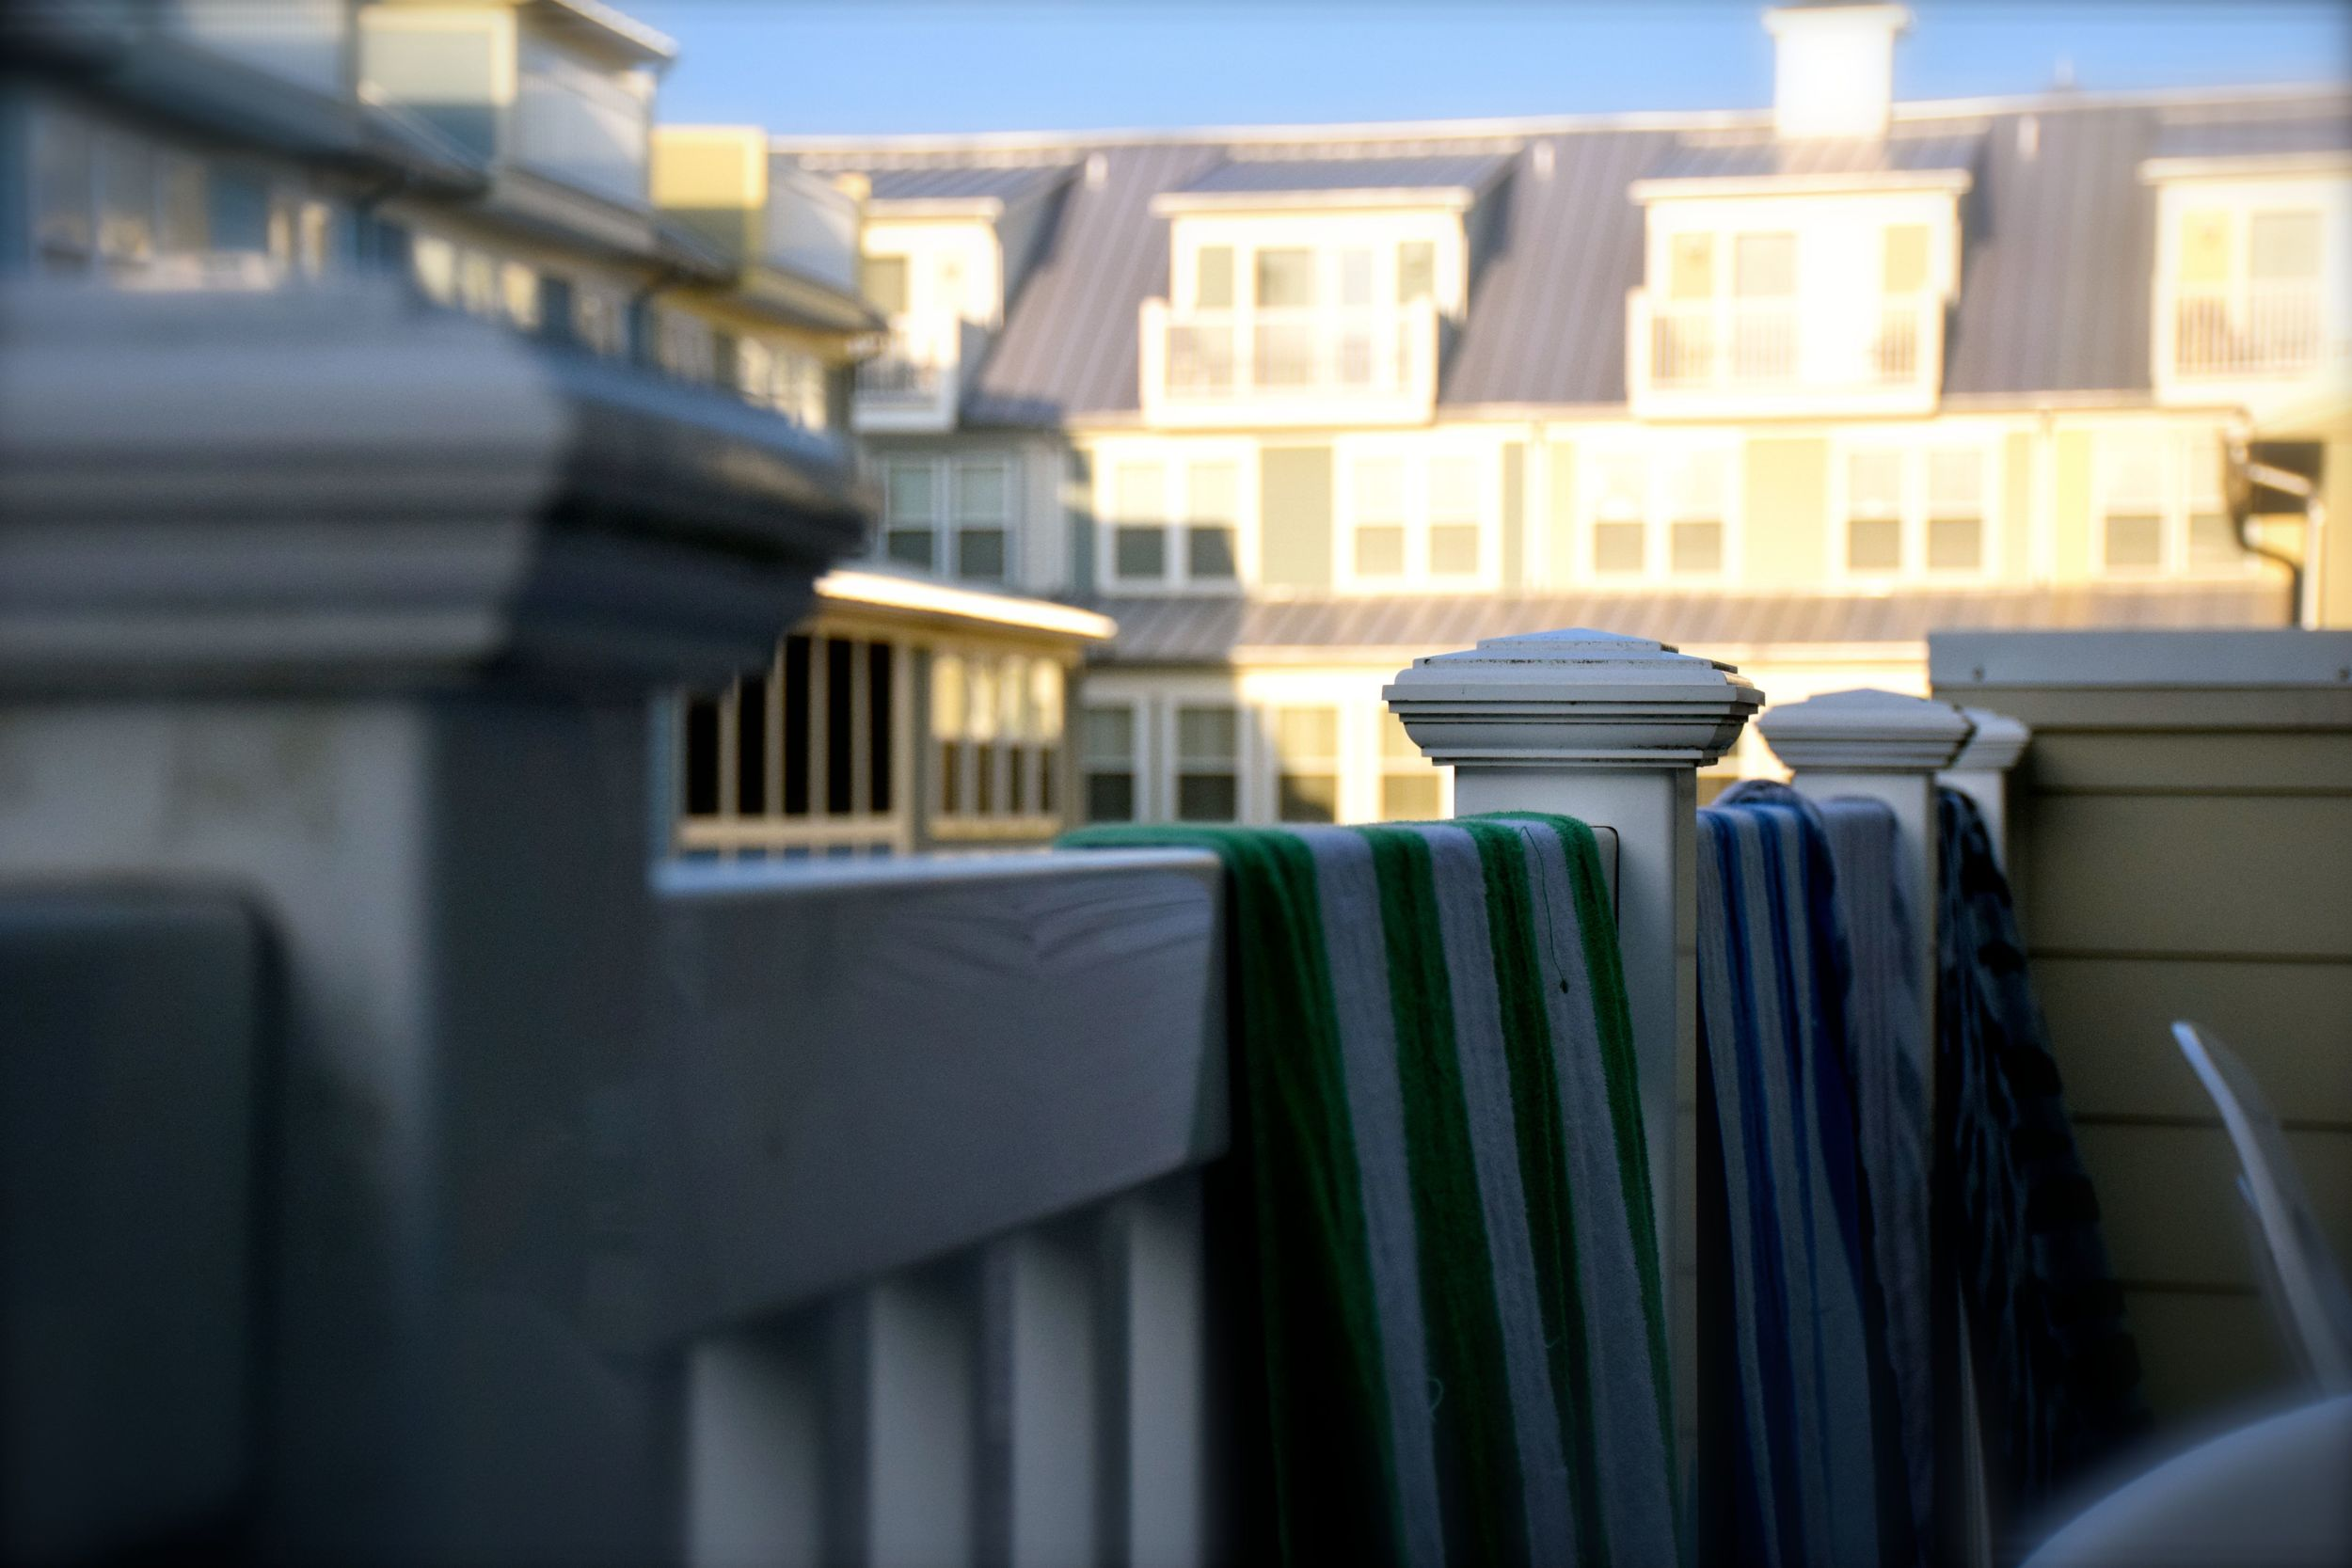 Drying our towels